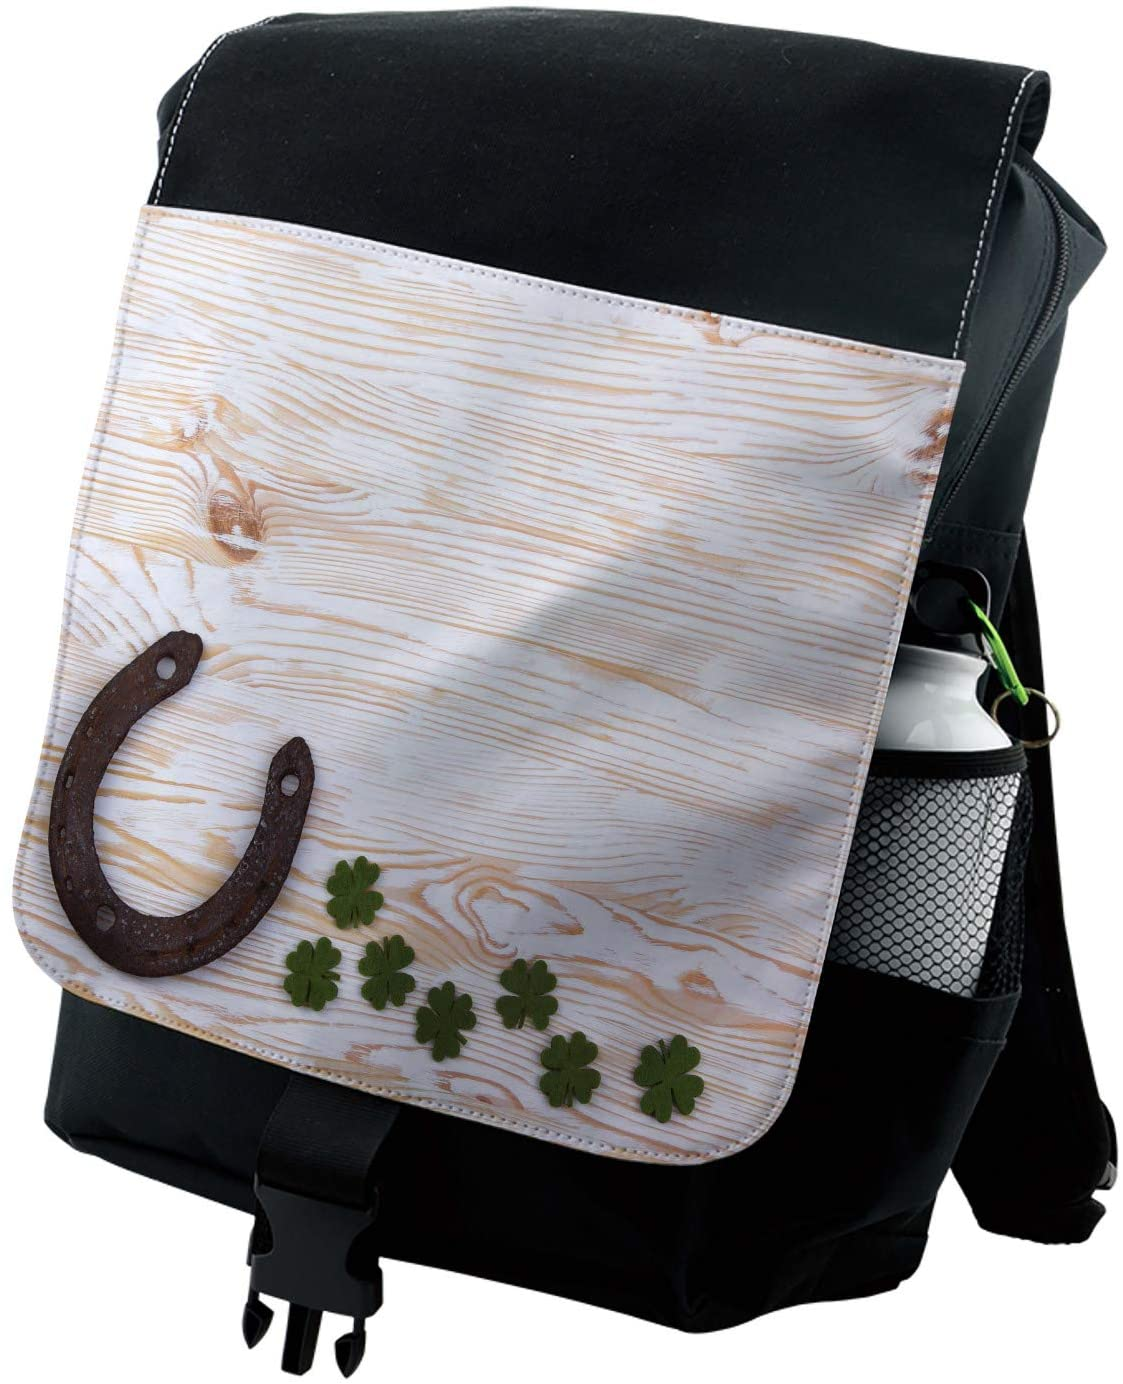 Lunarable Horseshoe Backpack, 4 Leaf Clovers Wood, Durable All-Purpose Bag